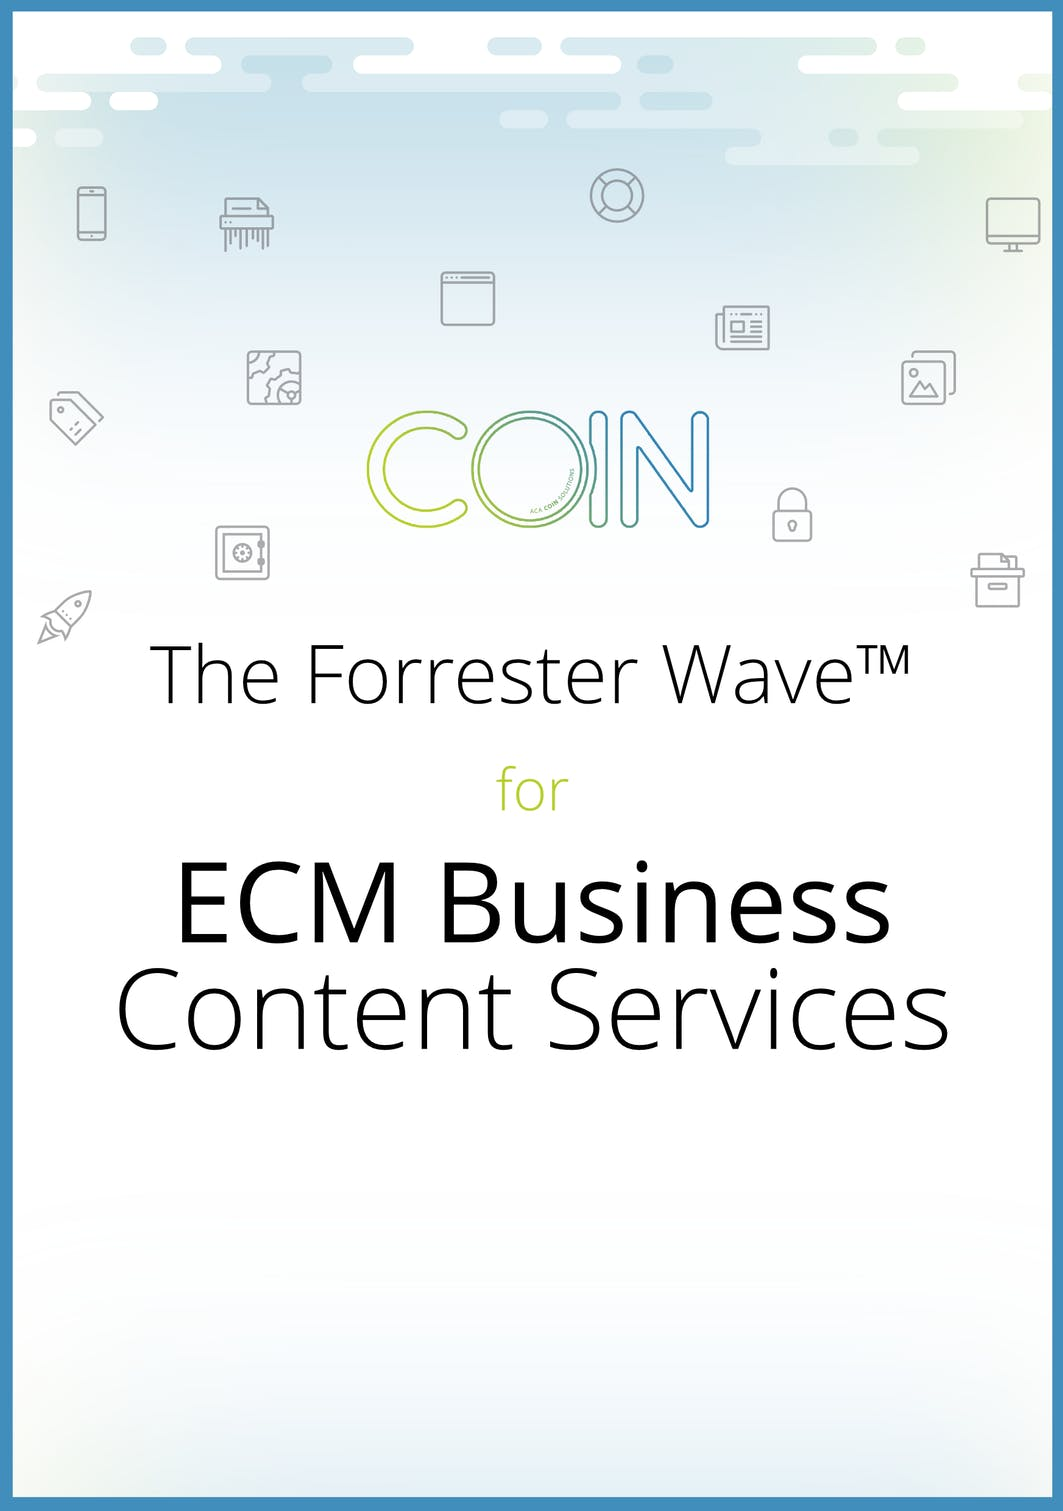 The Forrester Wave™ for ECM Business Content Services